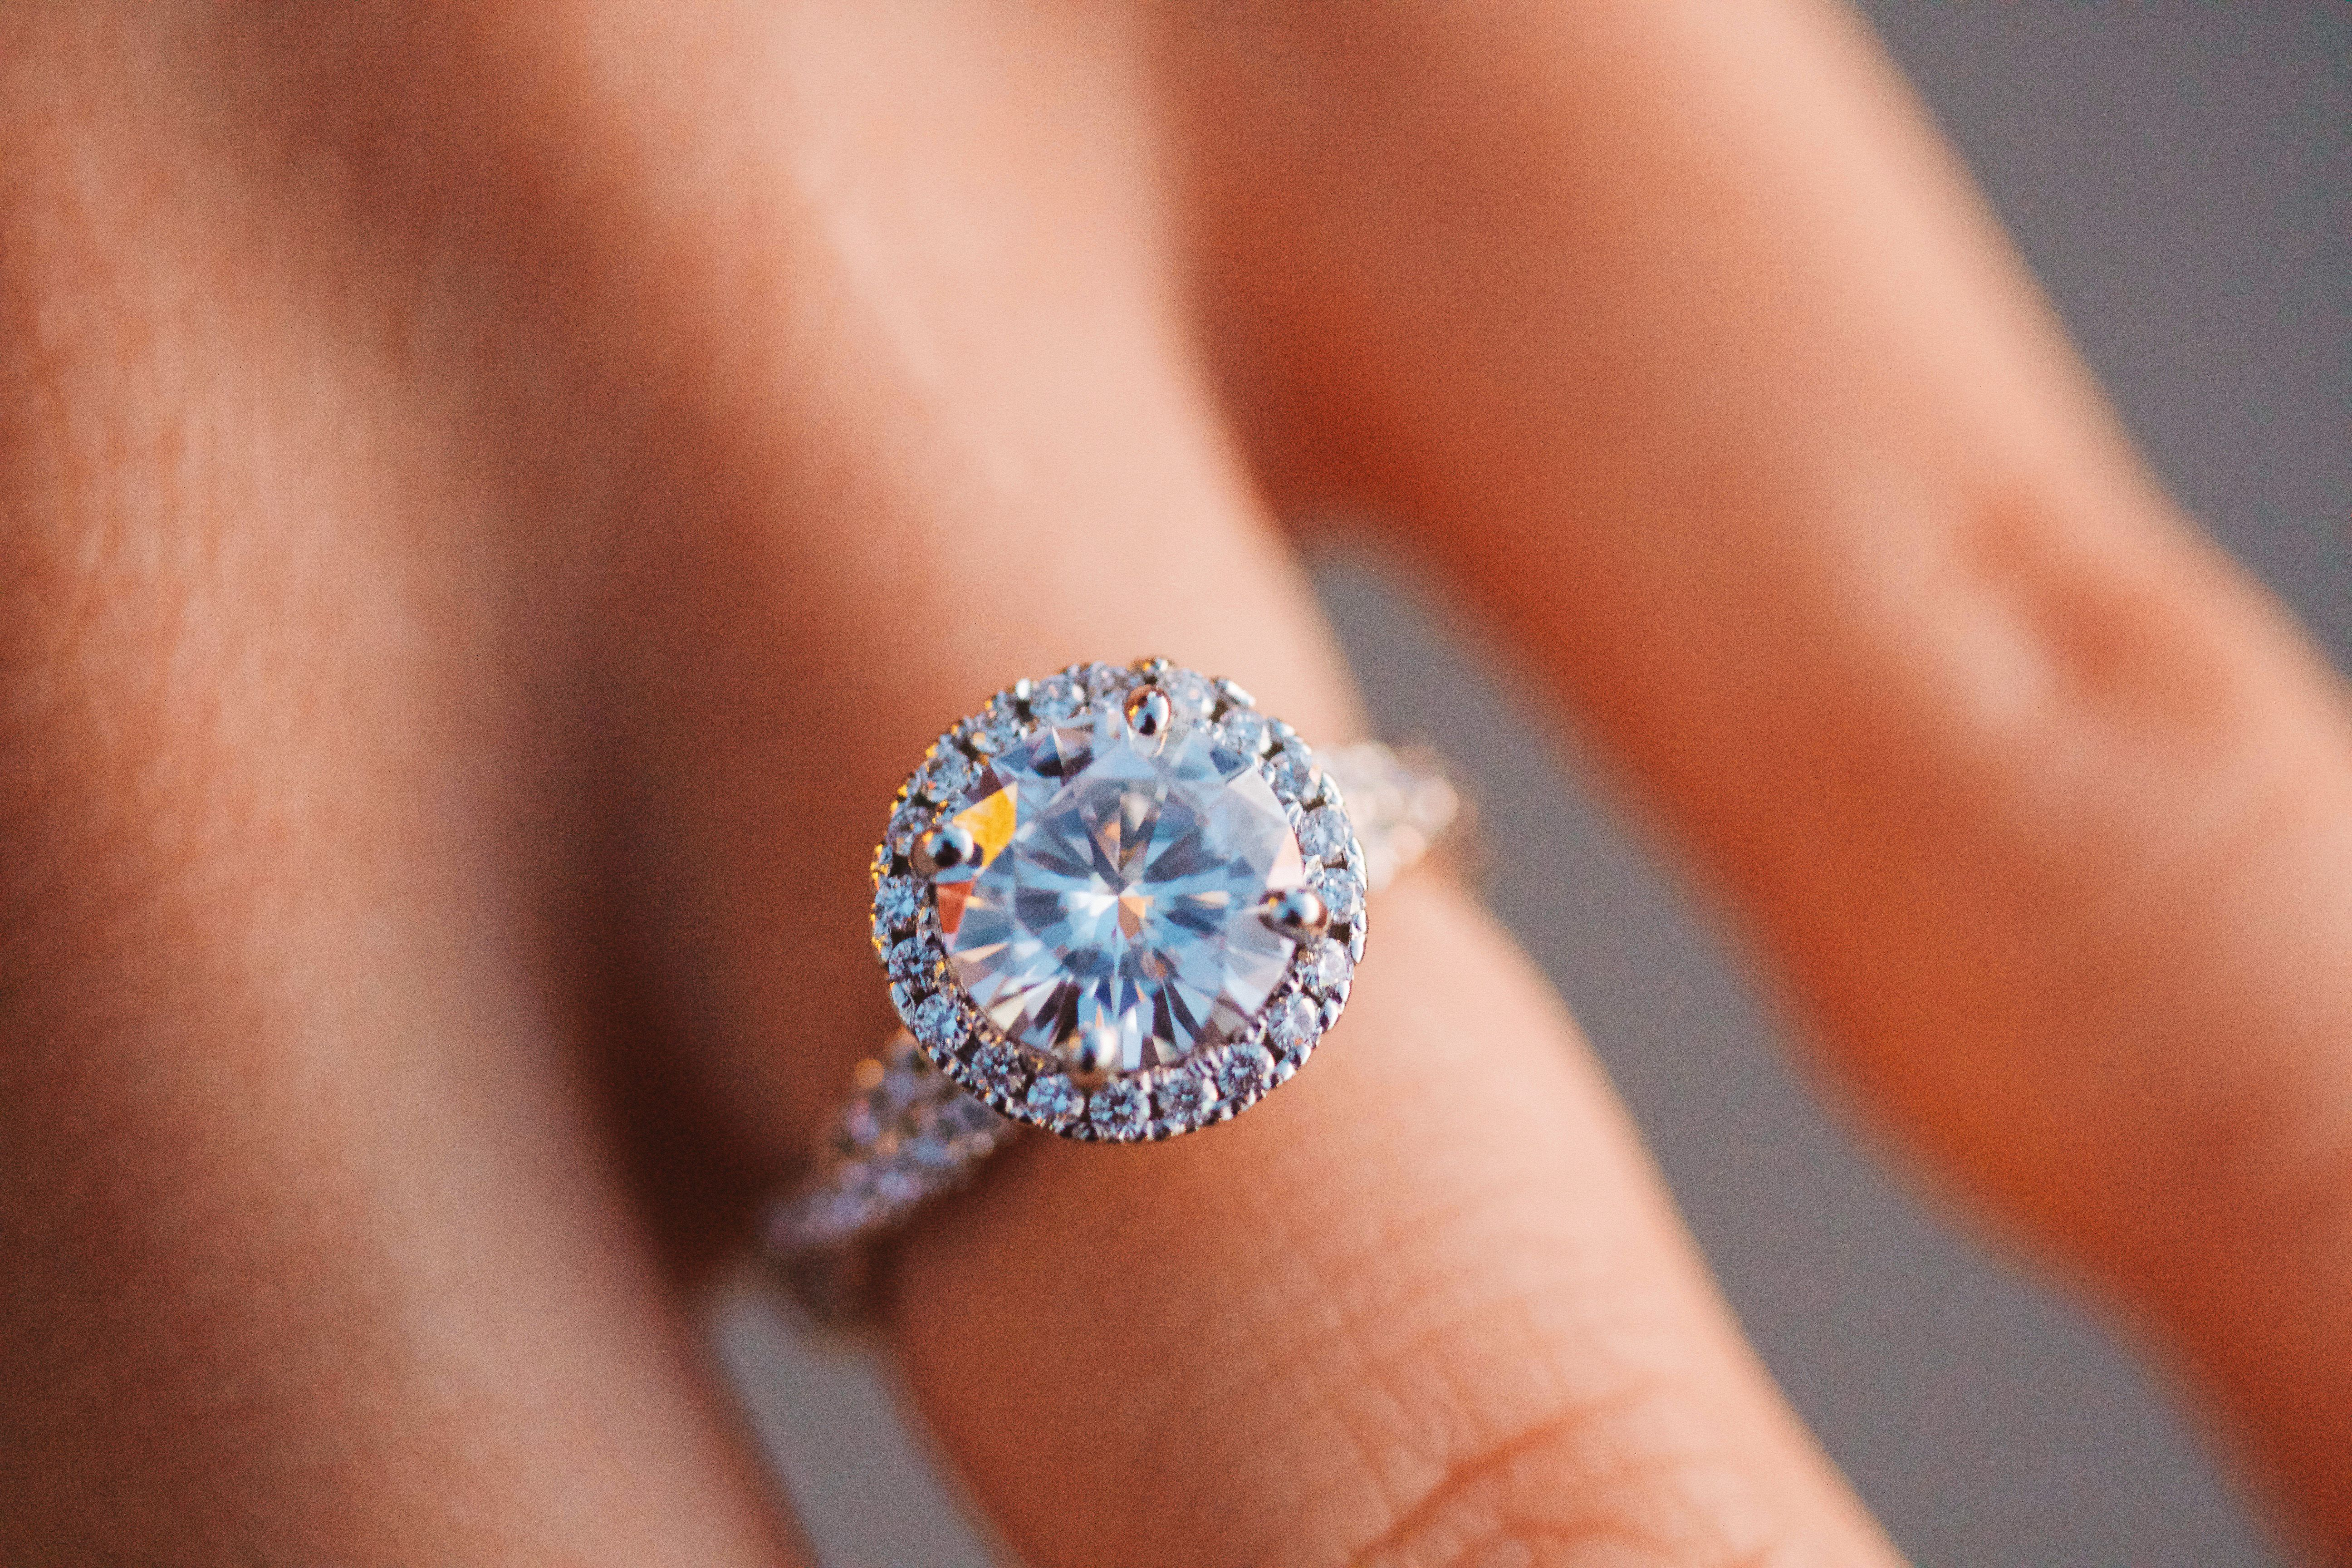 1.5 ct. moissanite halo ring with twist band.